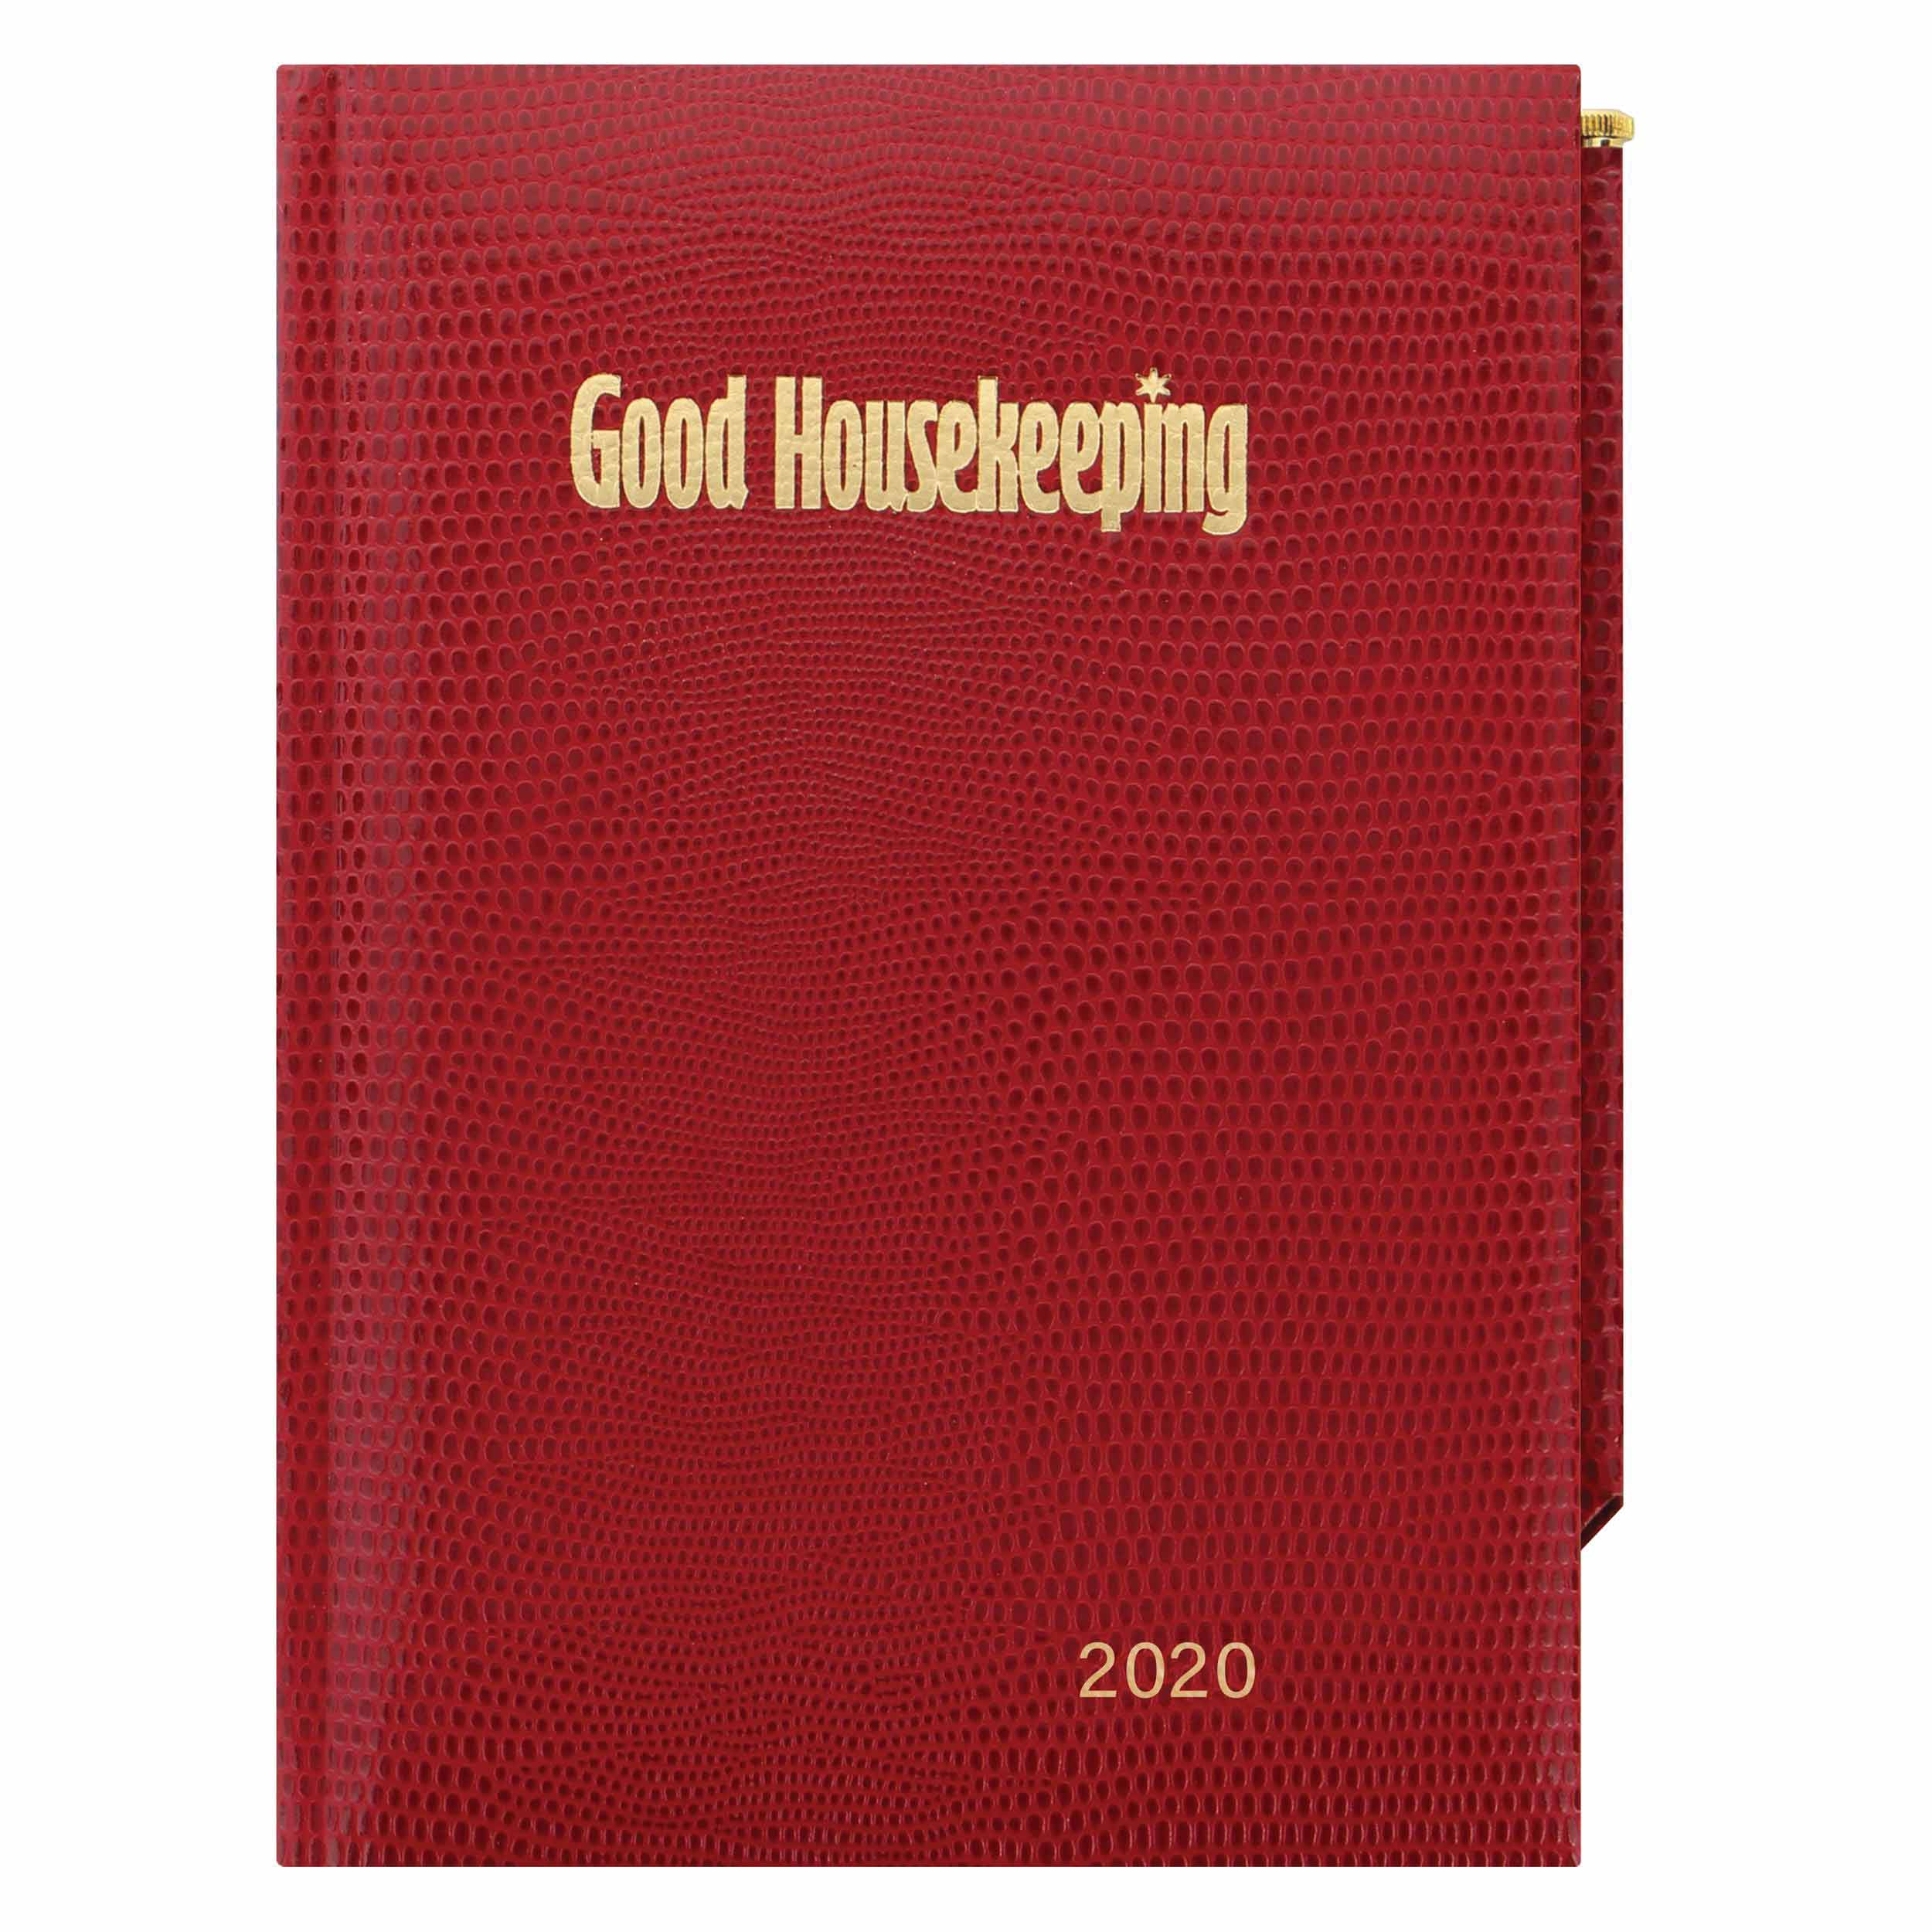 Good Housekeeping A6 Diary 2020